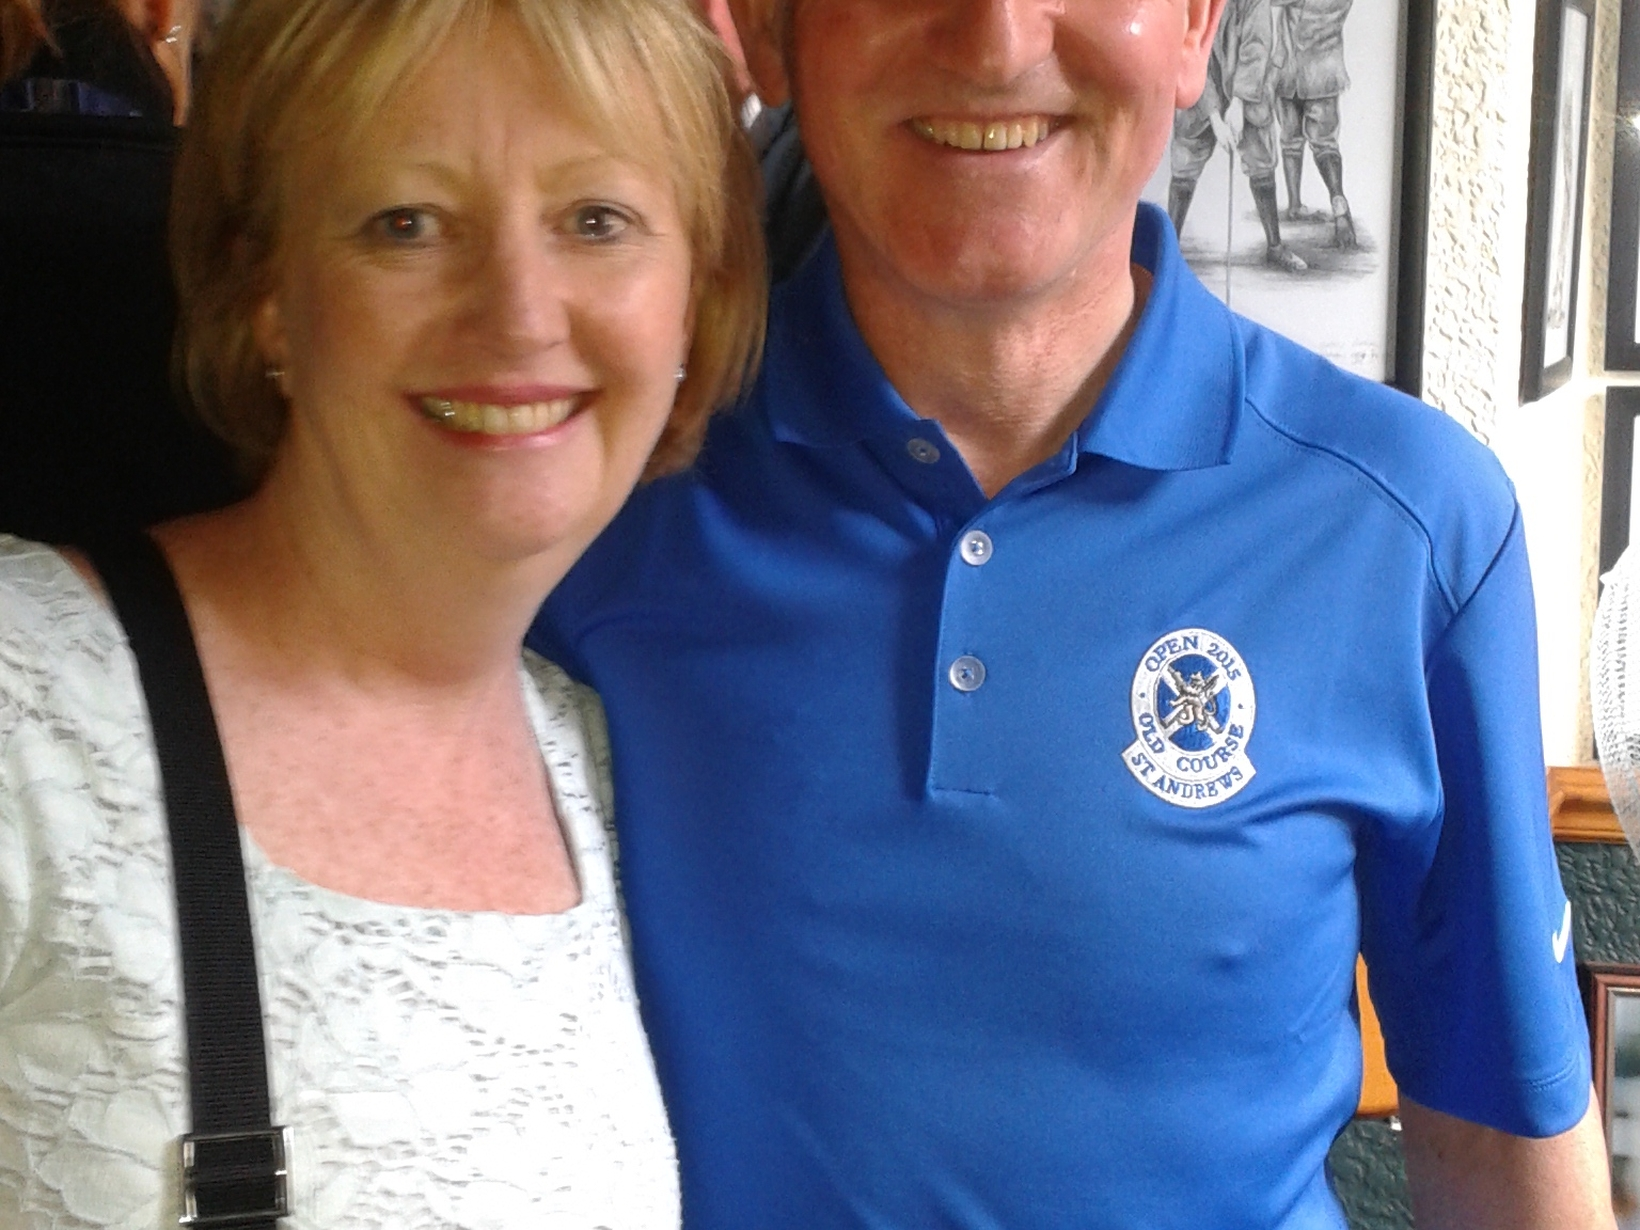 Irene & Jim from Saint Andrews, United Kingdom